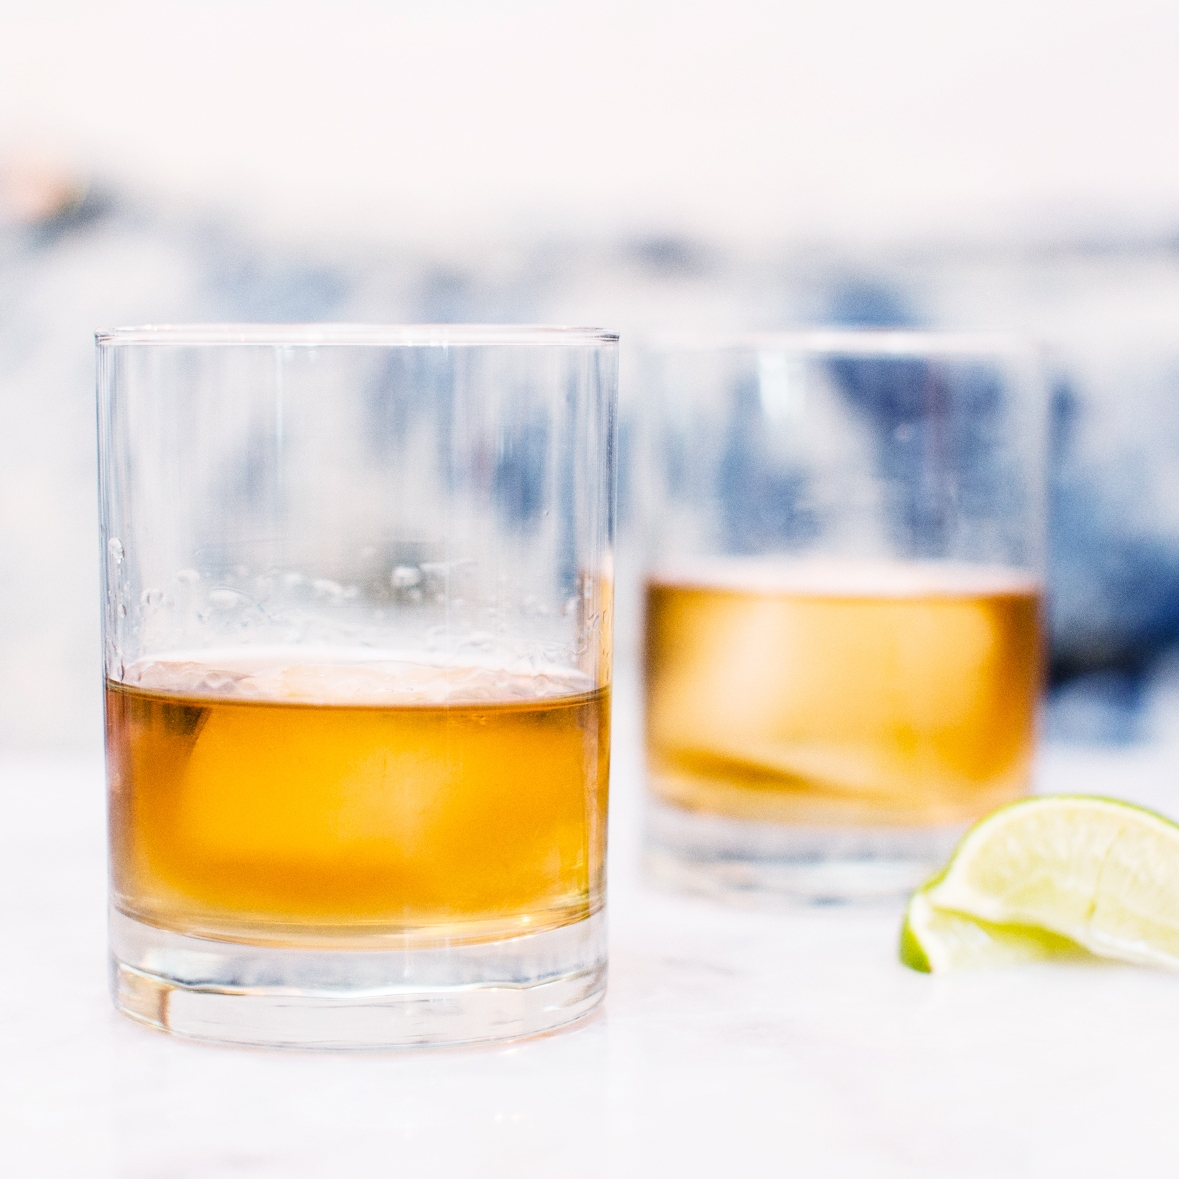 SERVING SUGGESTION - We recommend enjoying our Reposado over ice or simply with a squeeze of lime